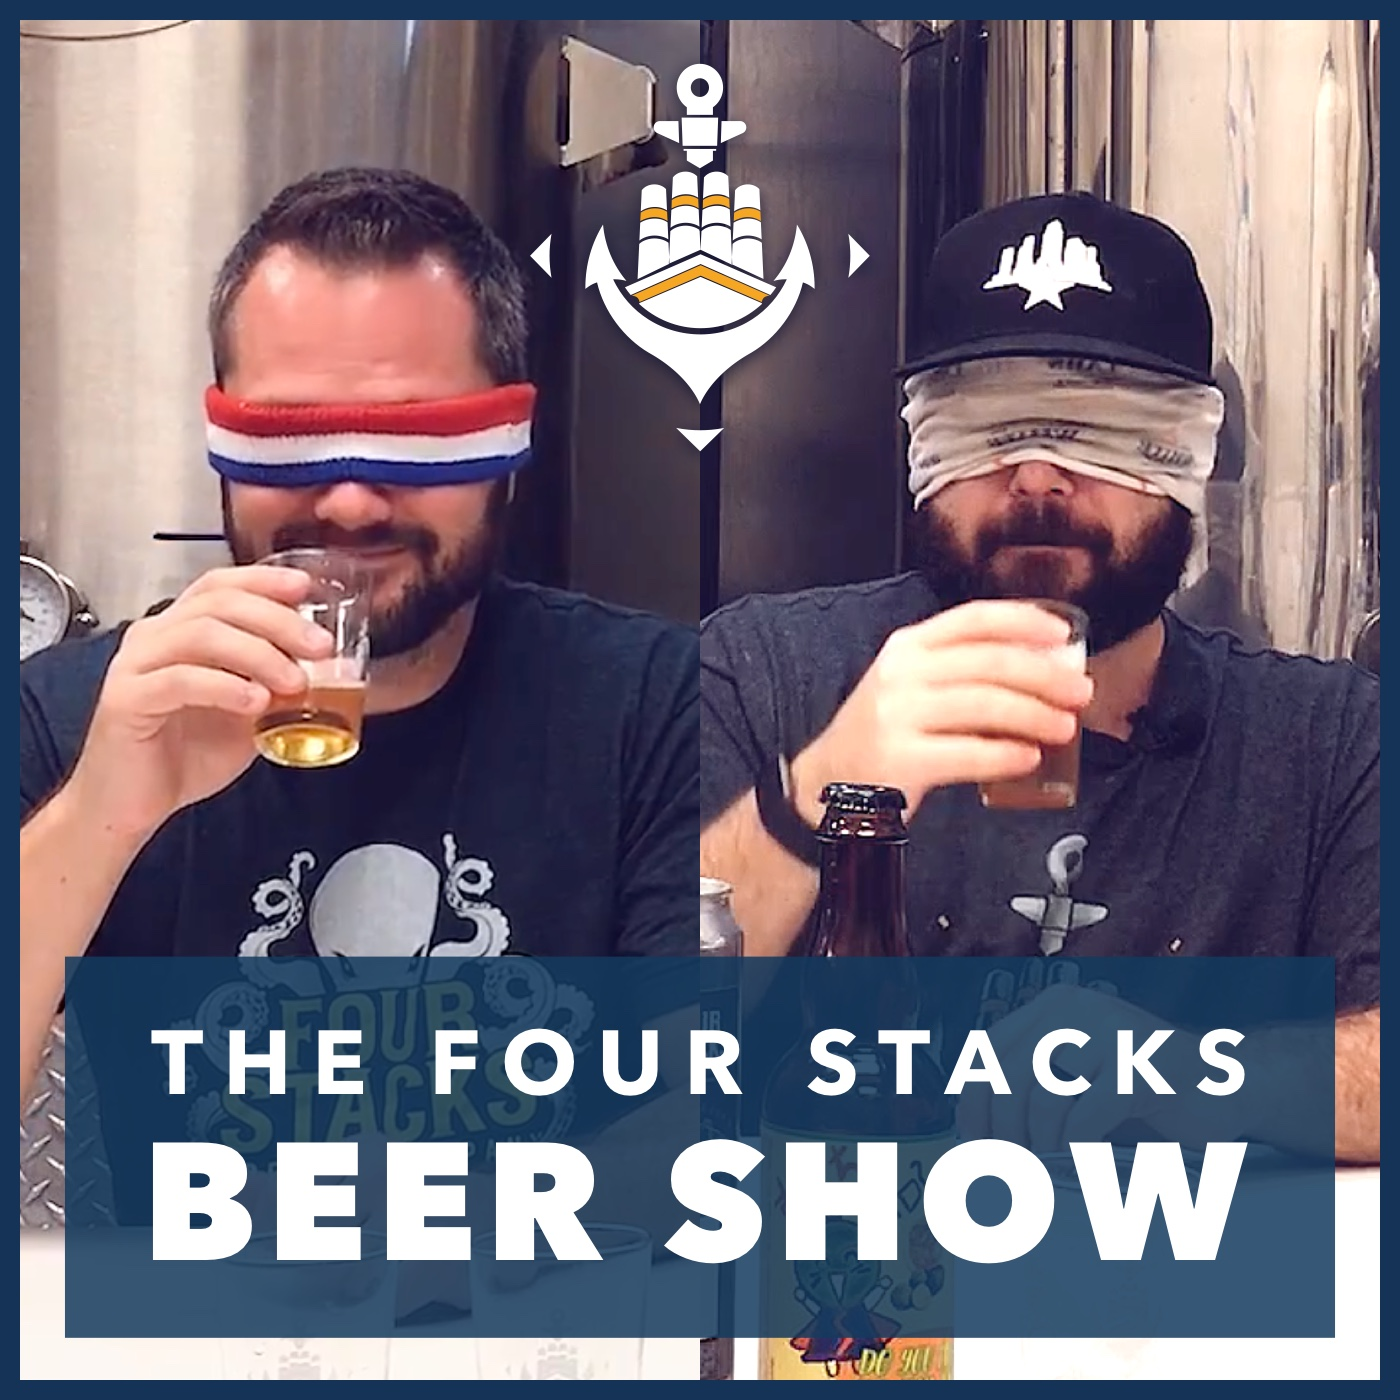 The Four Stacks Beer Show